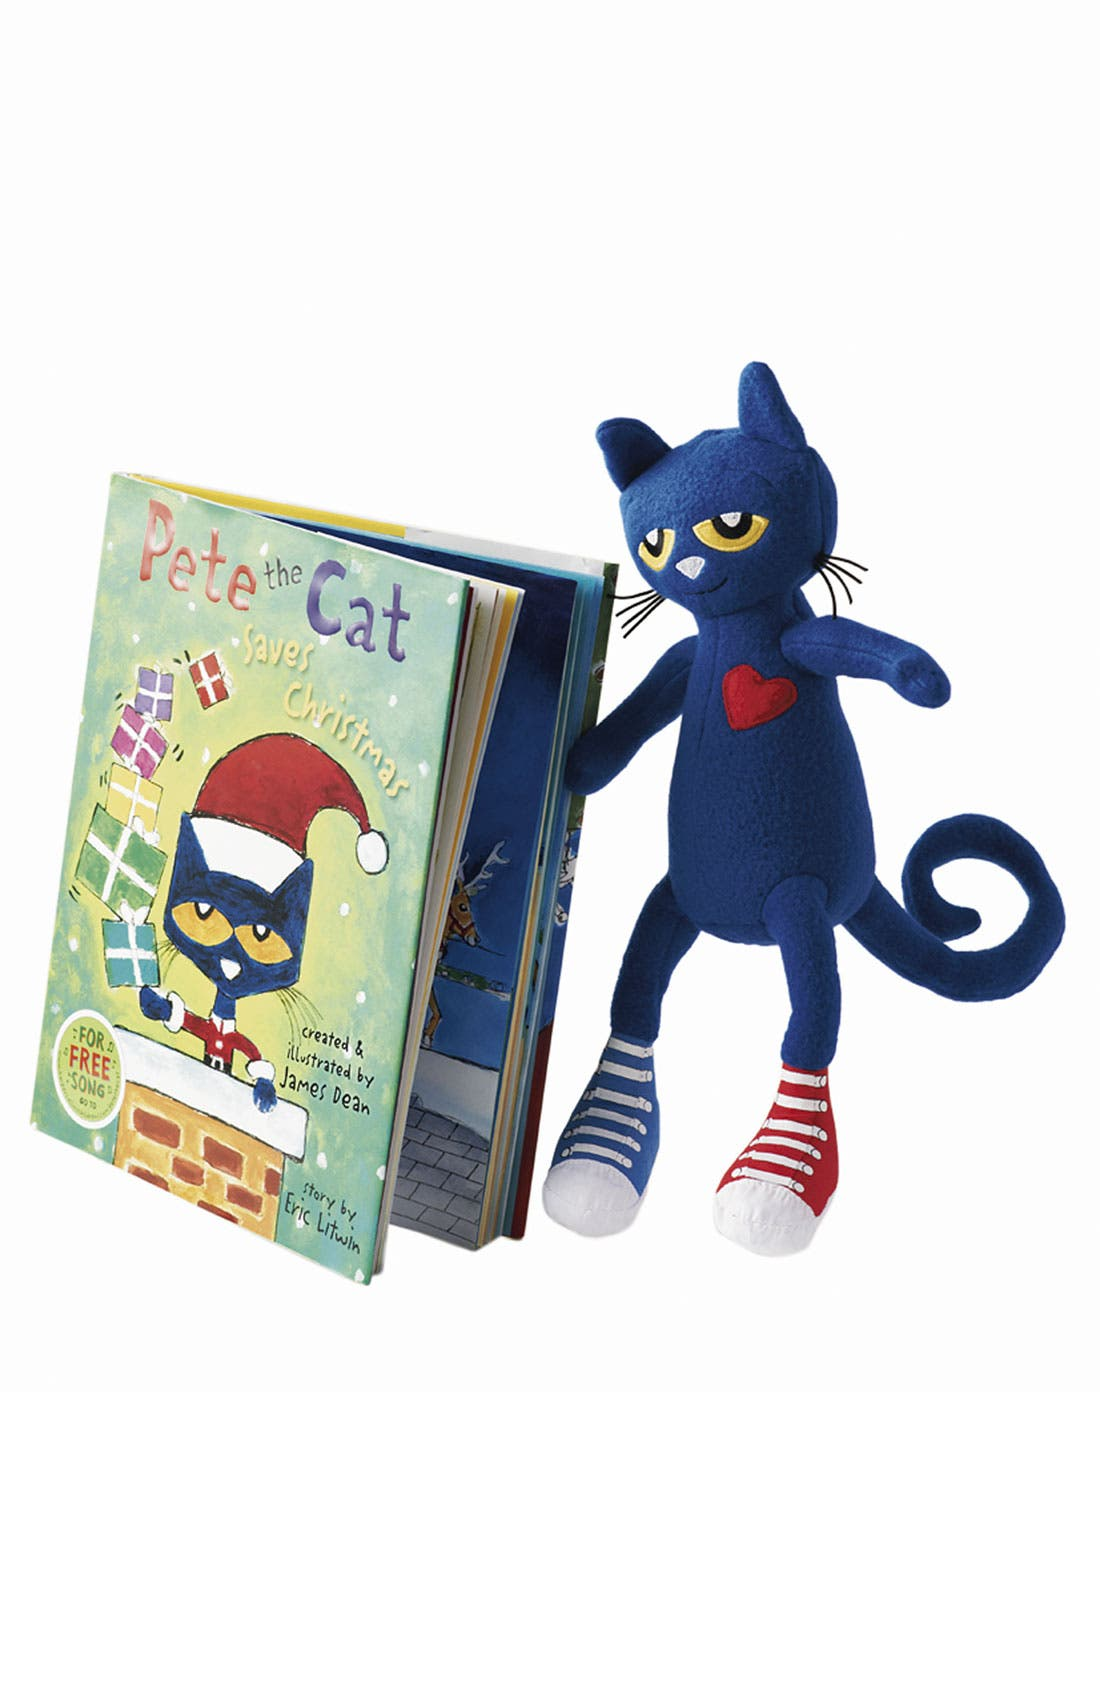 Alternate Image 2  - James Dean & Eric Litwin 'Pete the Cat Saves Christmas' Story Book